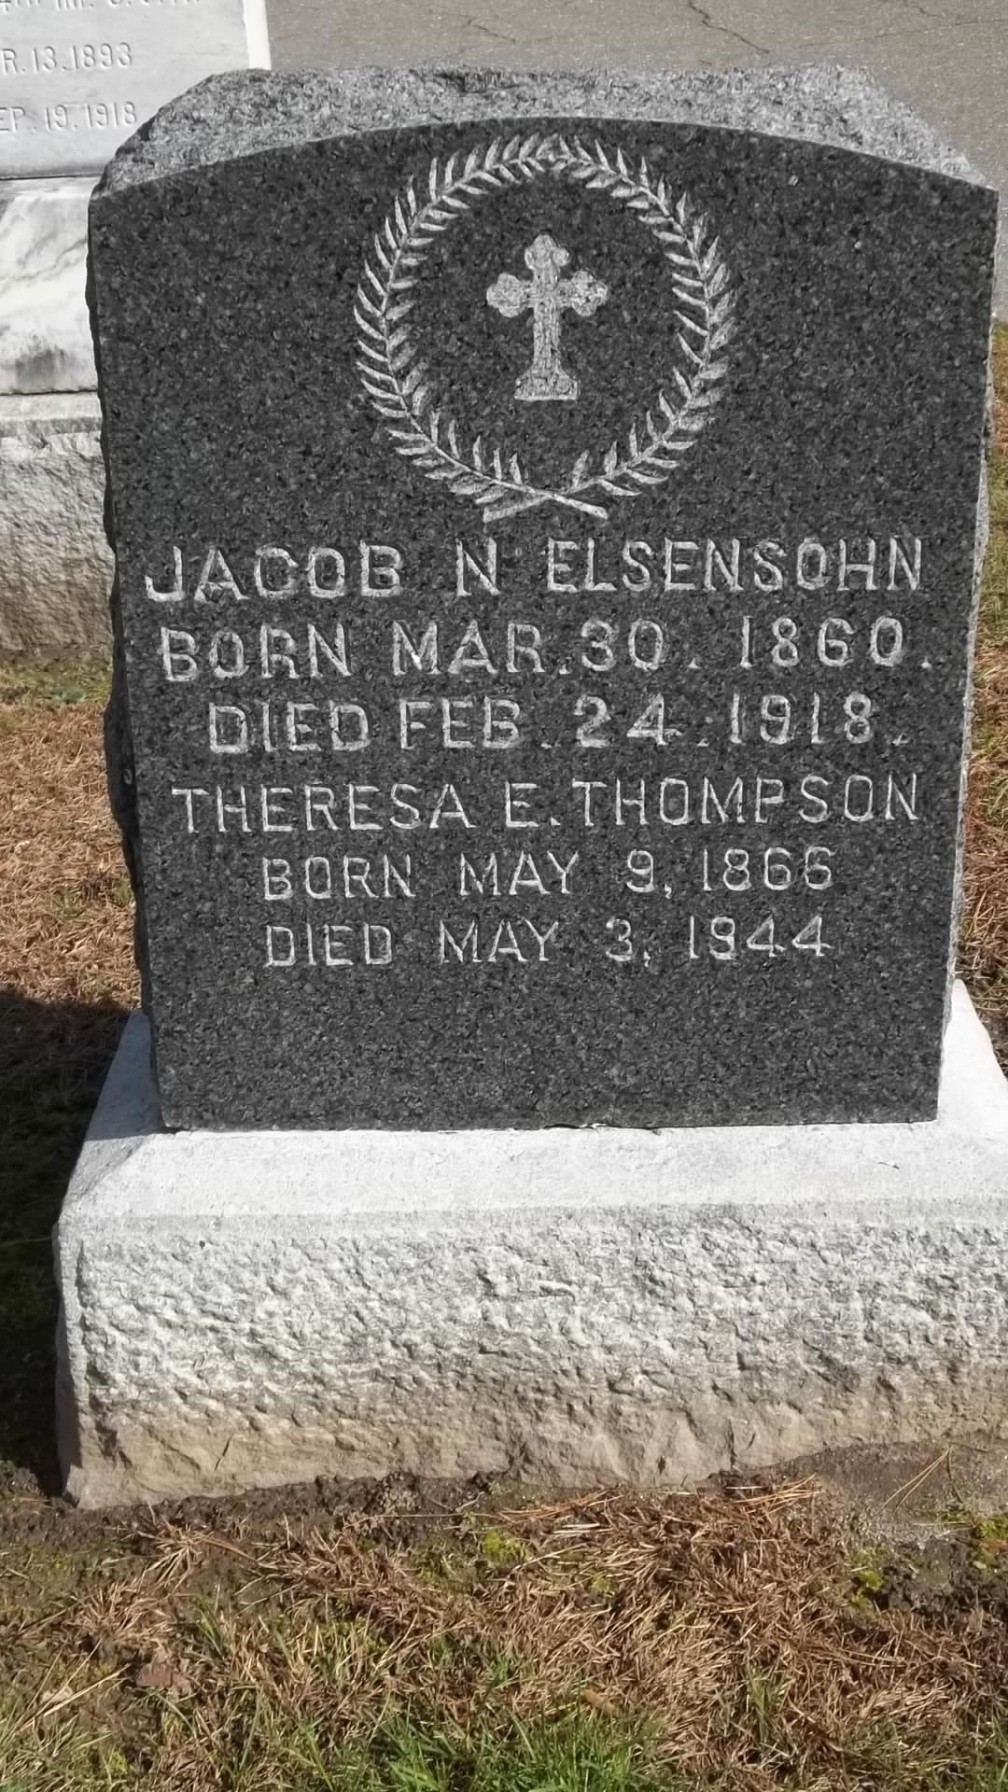 Jacob N Elsensohn